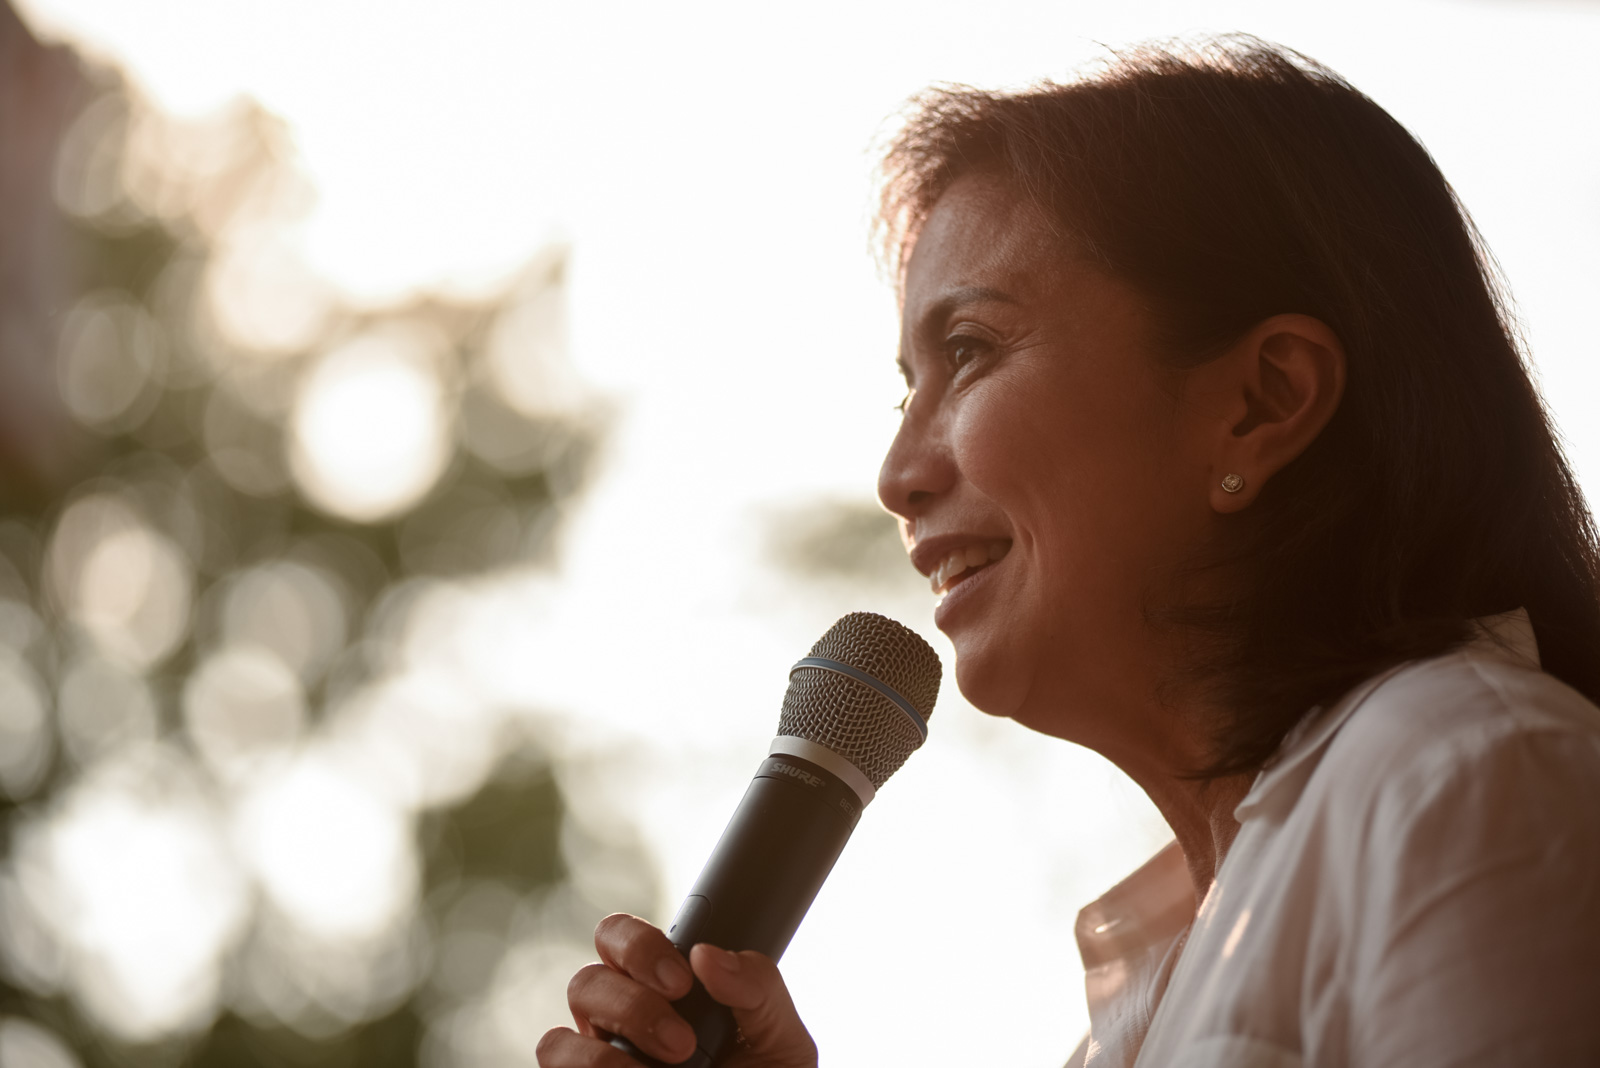 Vice Presidential candidate Leni Robredo speaks to supporters, declaring that a win by her opponent Bongbong Marcos is already mathematically improbable, May 15, 2016, at the Ateneo de Manila University in Quezon City.